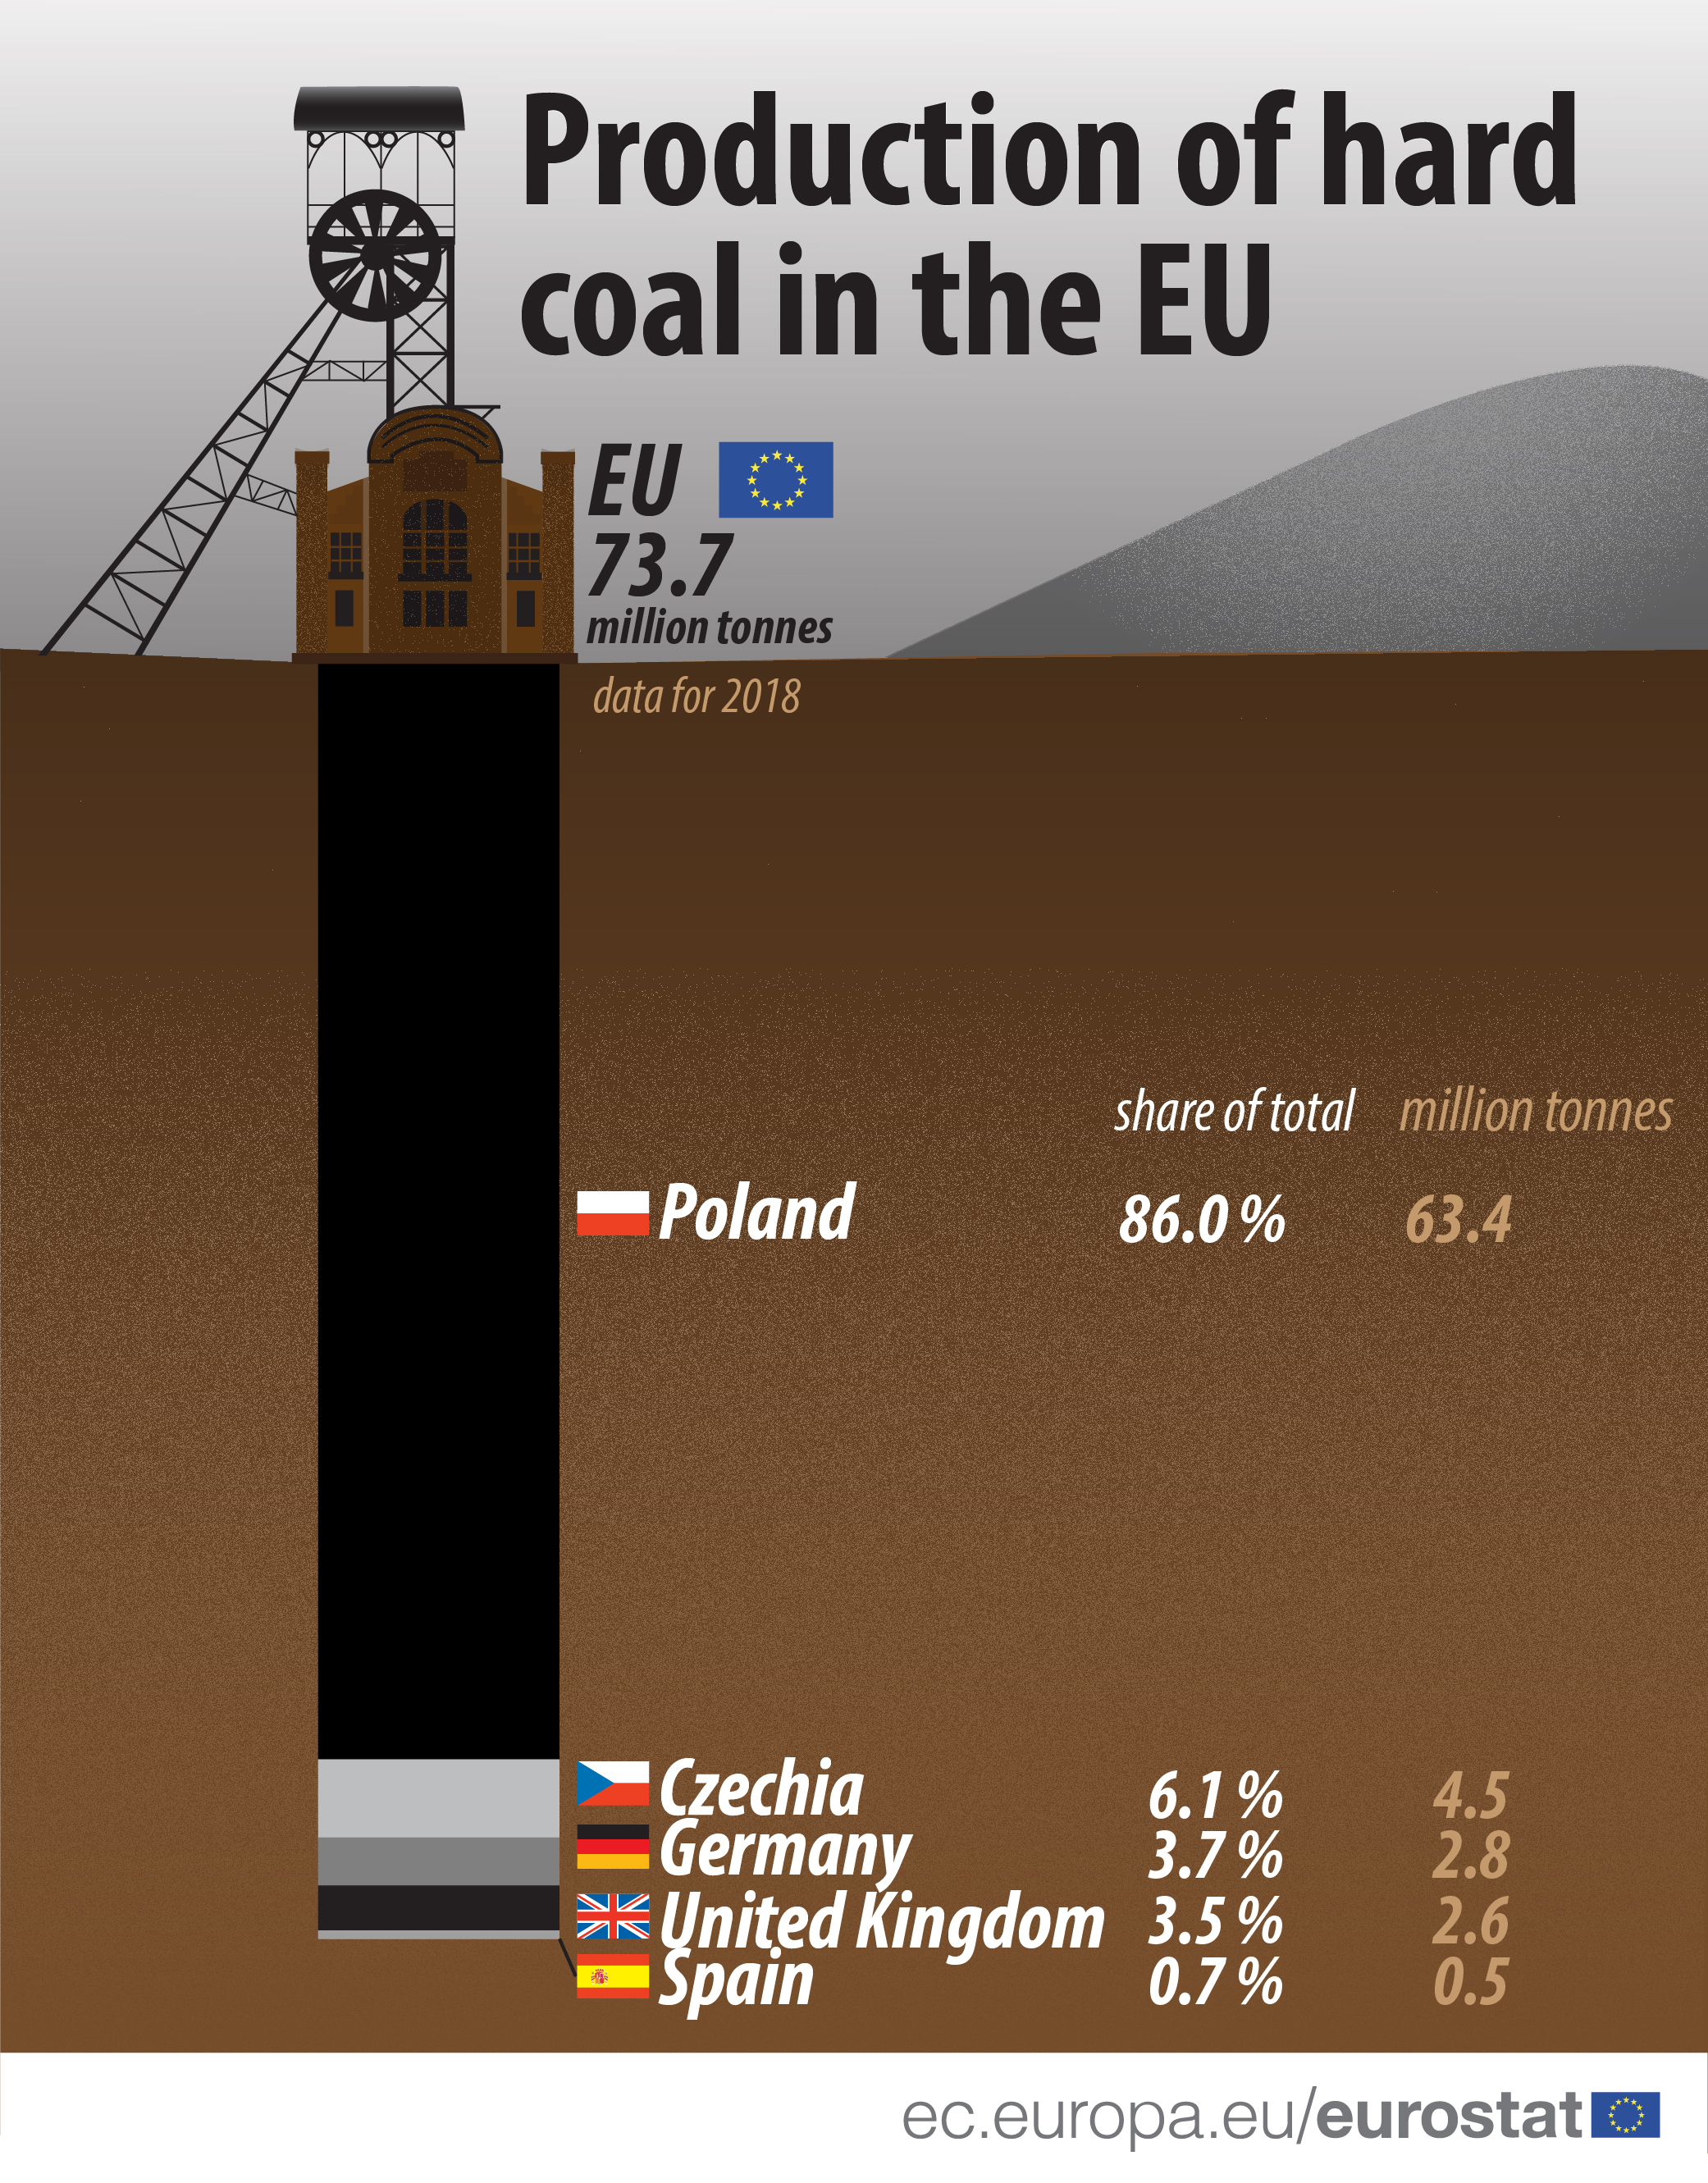 https://ec.europa.eu/eurostat/statistics-explained/images/6/6c/Hard_coal_production-01.jpg